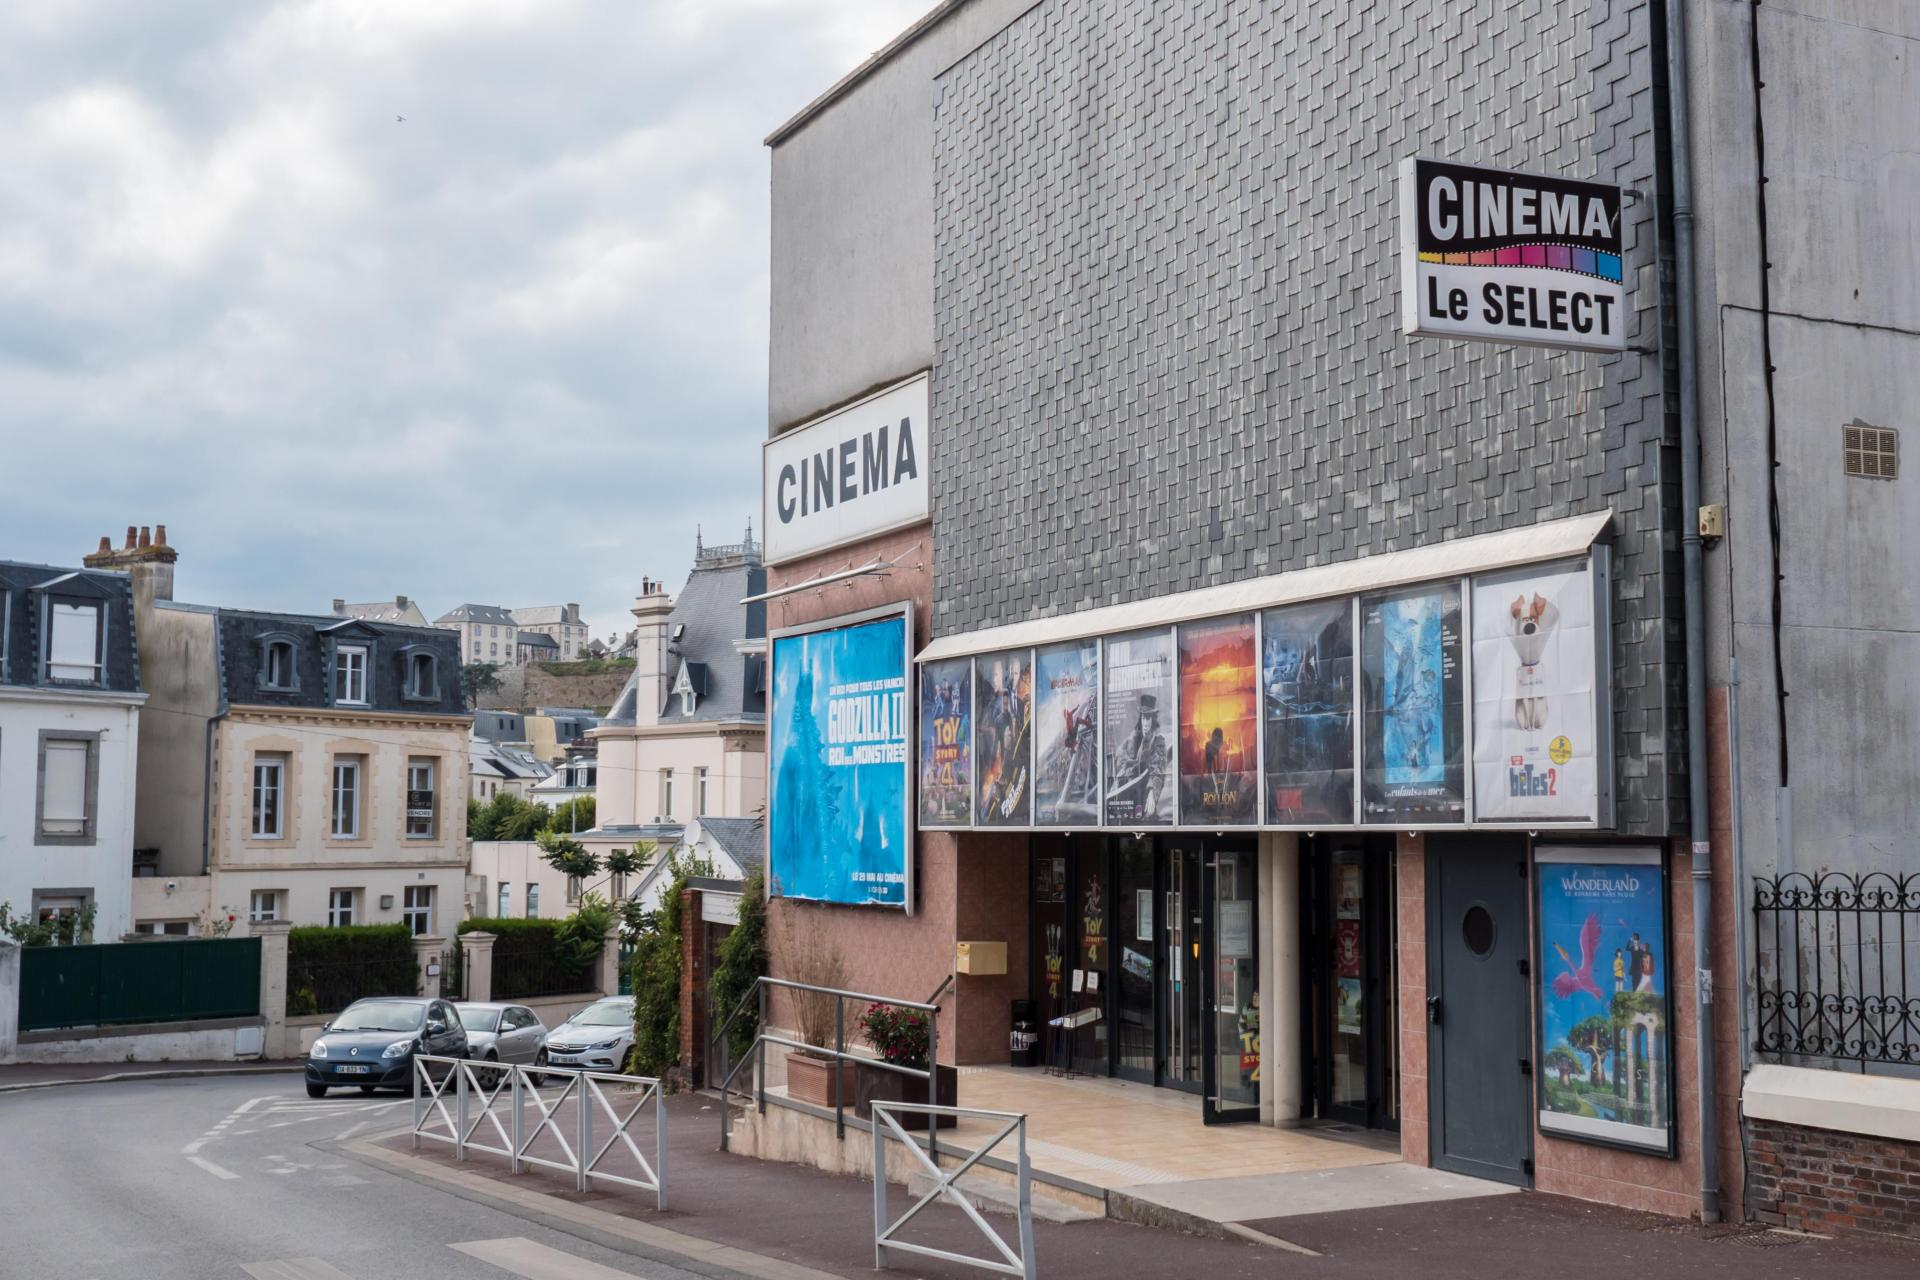 A cinema complex in the French town of Granville. Photo: Shutterstock.com